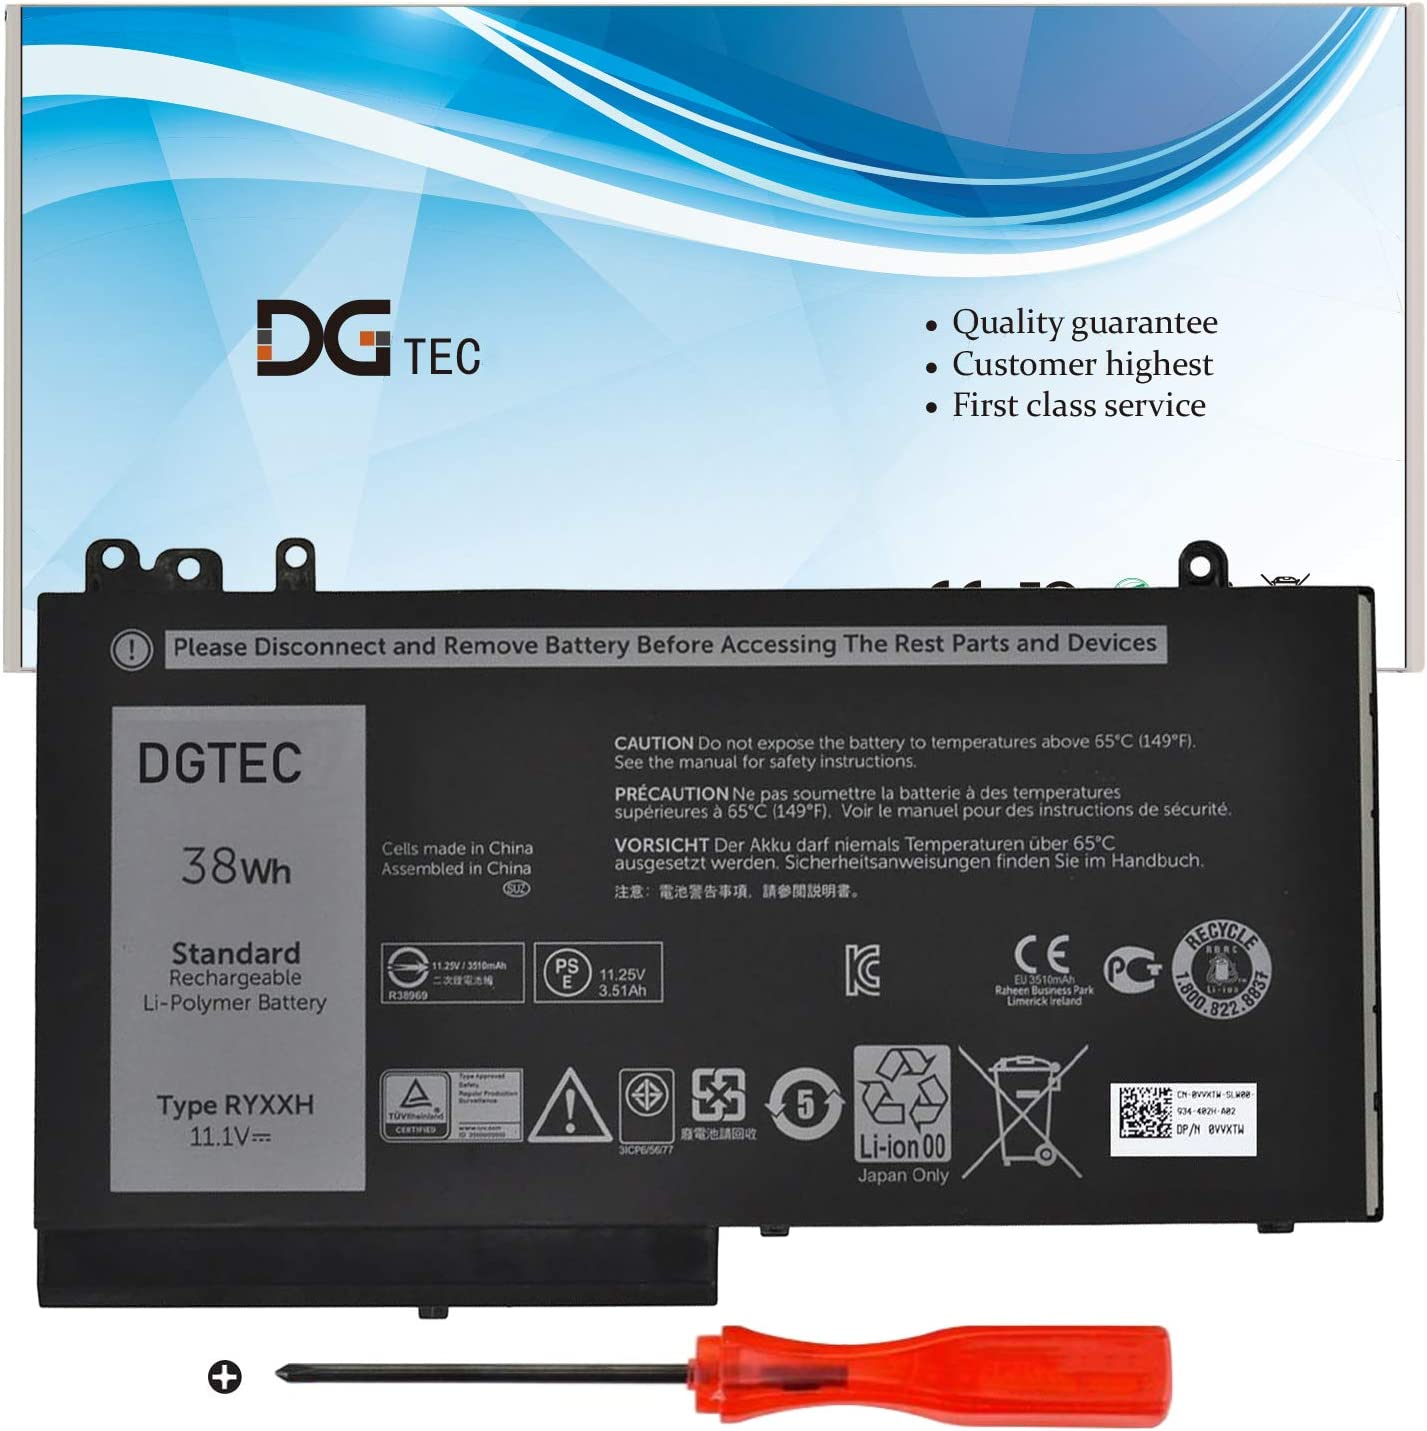 DGTEC RYXXH Laptop Battery Replacement for Dell Latitude 12 5000 E5250 (P25S001) Latitude E5450 E5550 Latitude 11 3150 3160 Series 9P4D2 YD8XC 5TFCY VVXTW VY9ND R5MD0(11.1V 38WH)